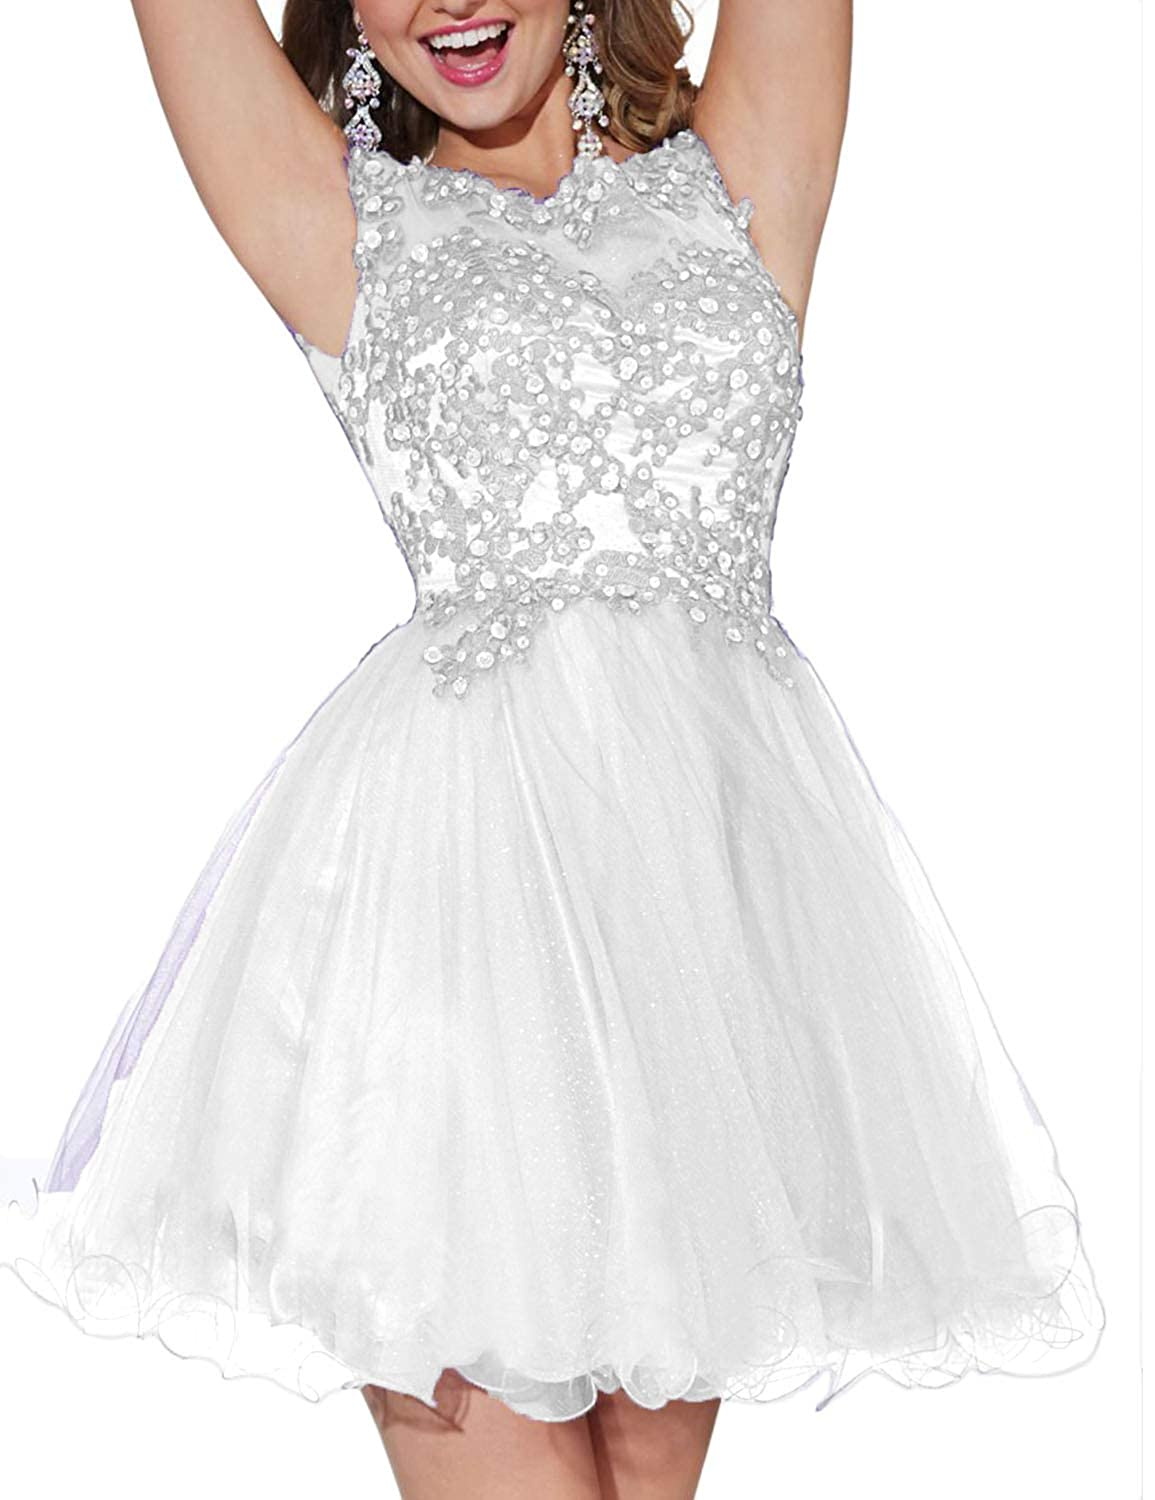 3a37c7d1a4a YIRENWANSHA Juniors Homecoming Dresses 2018 Manual Beaded Short Party Gown  Tulle Cocktail Dress H019 at Amazon Women s Clothing store